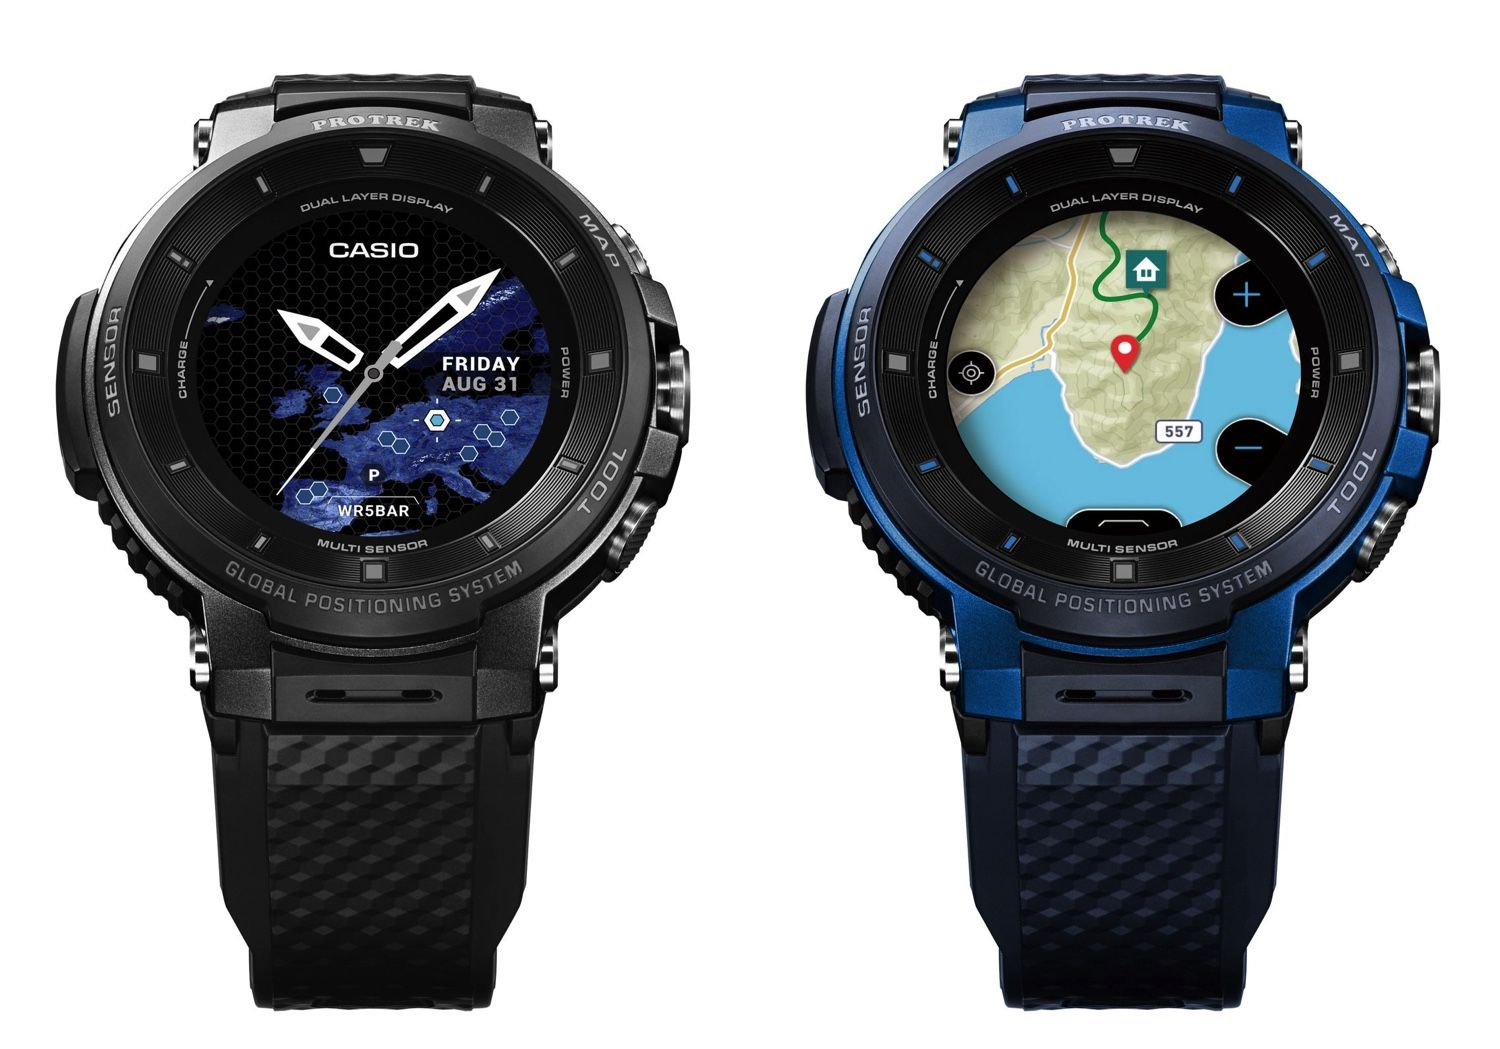 Casio's new smartwatch features offline color maps and GPS